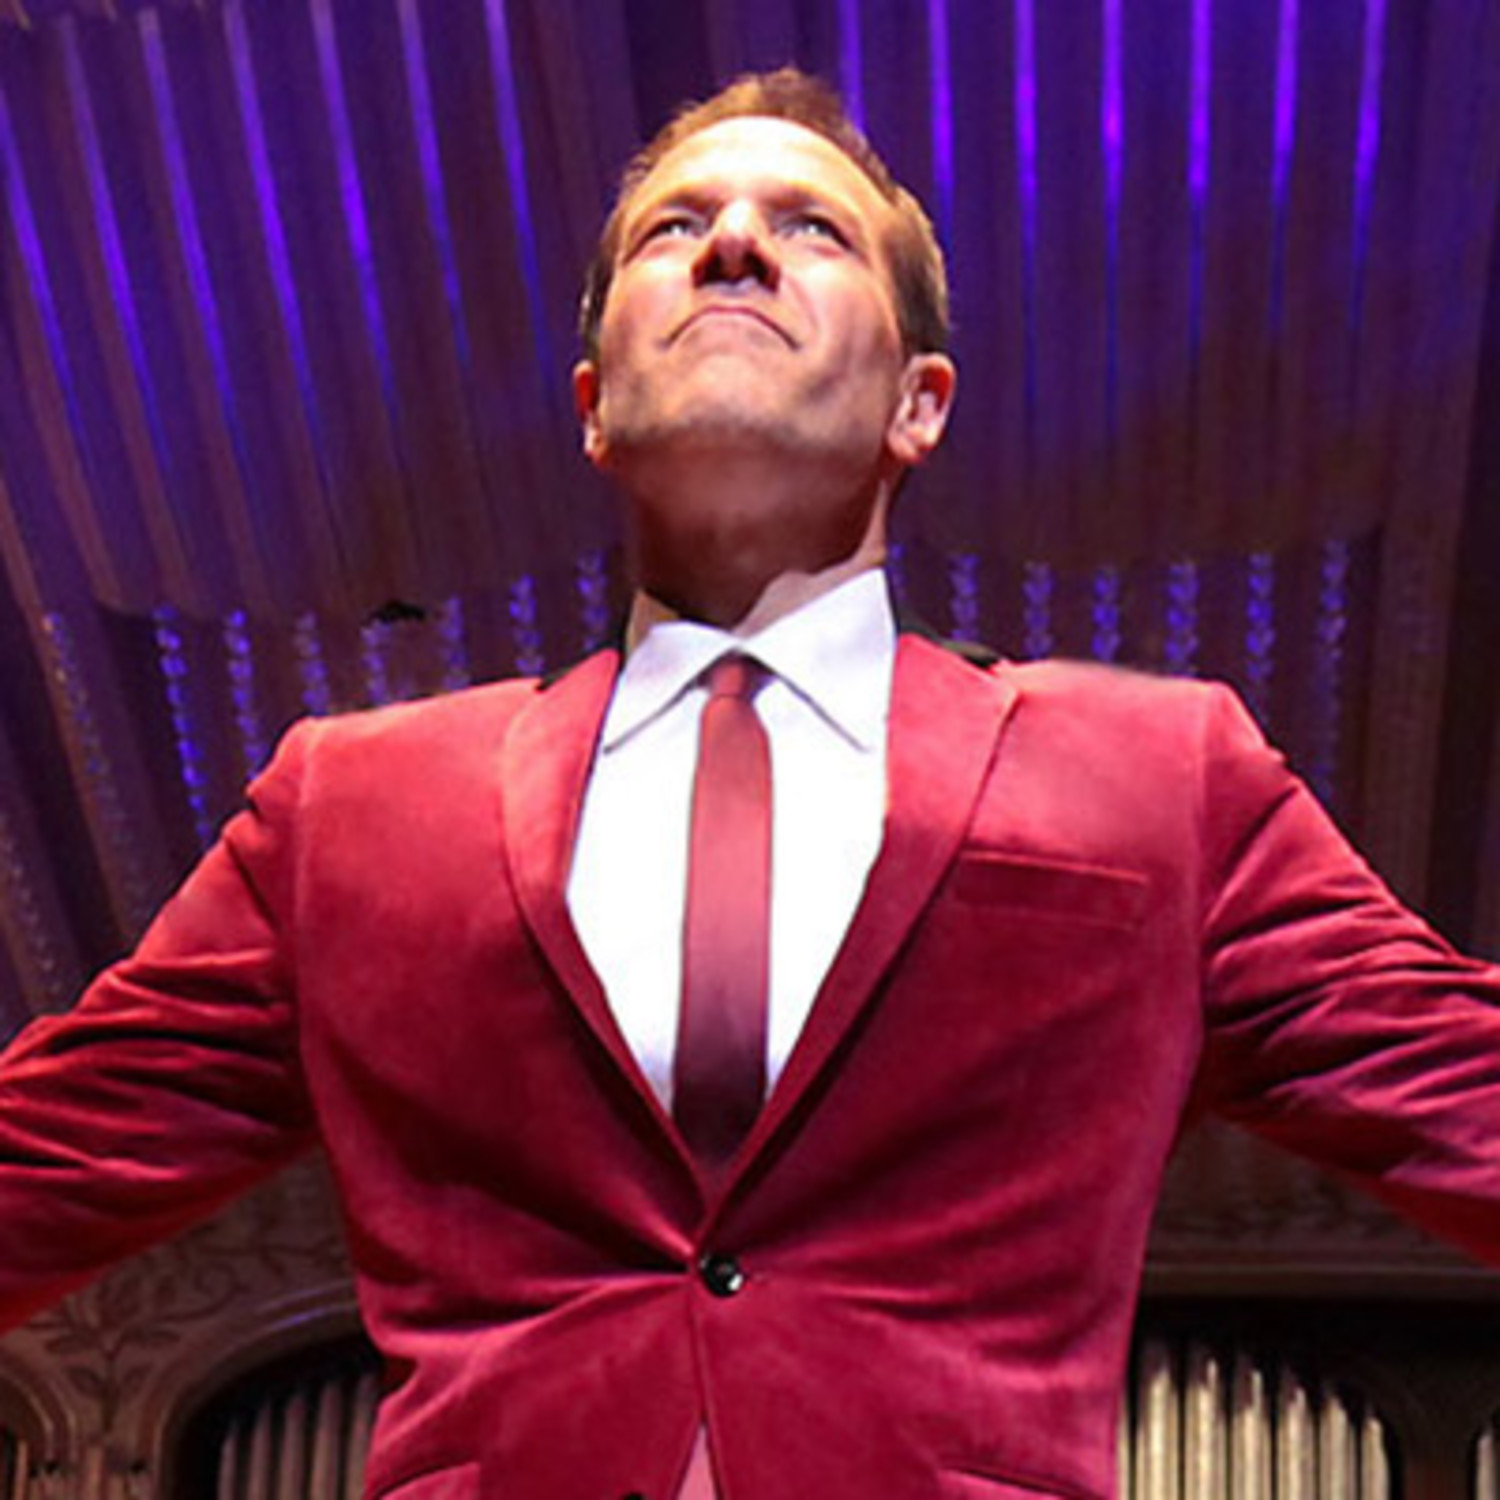 Jim Brickman - A Joyful Christmas | The Central Voice